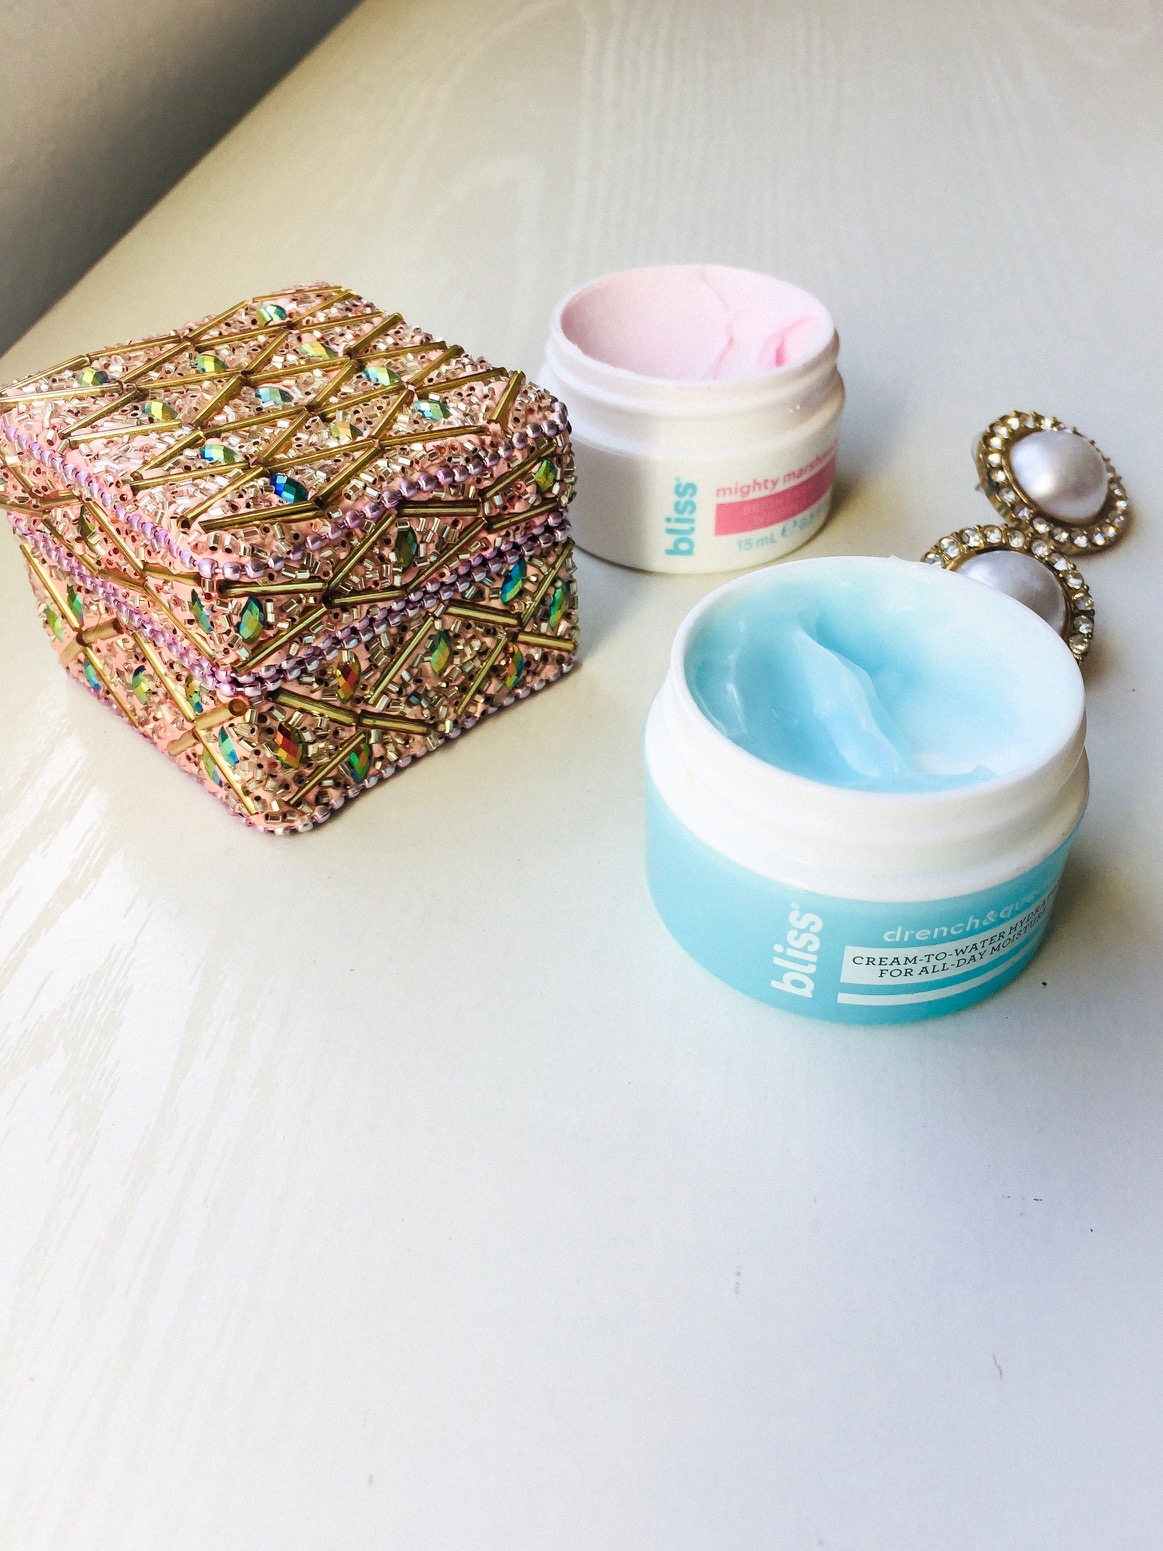 Bliss Beauty Products Part II